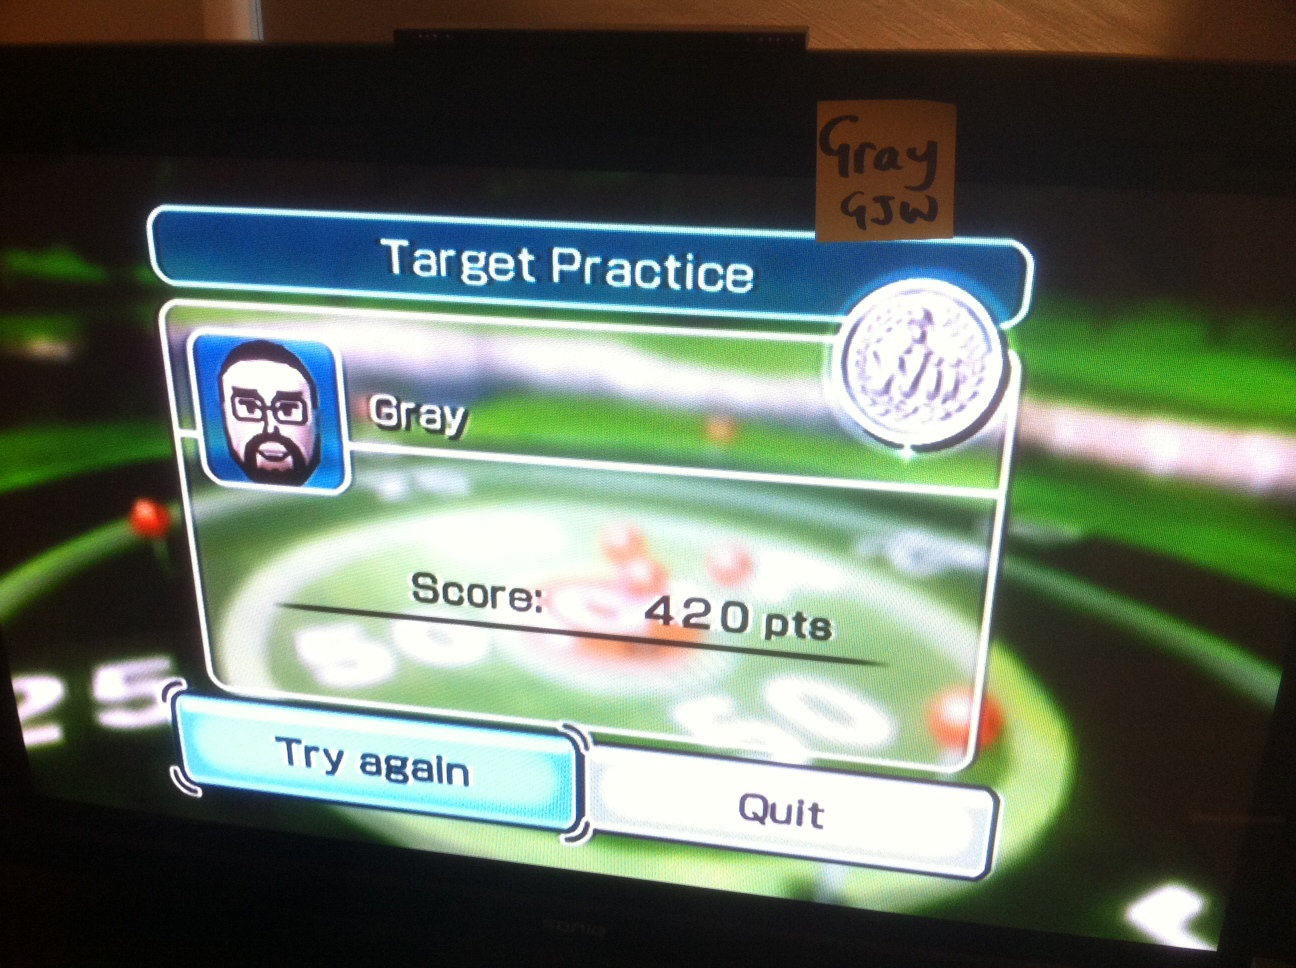 Wii Sports: Golf [Target Practice] 420 points